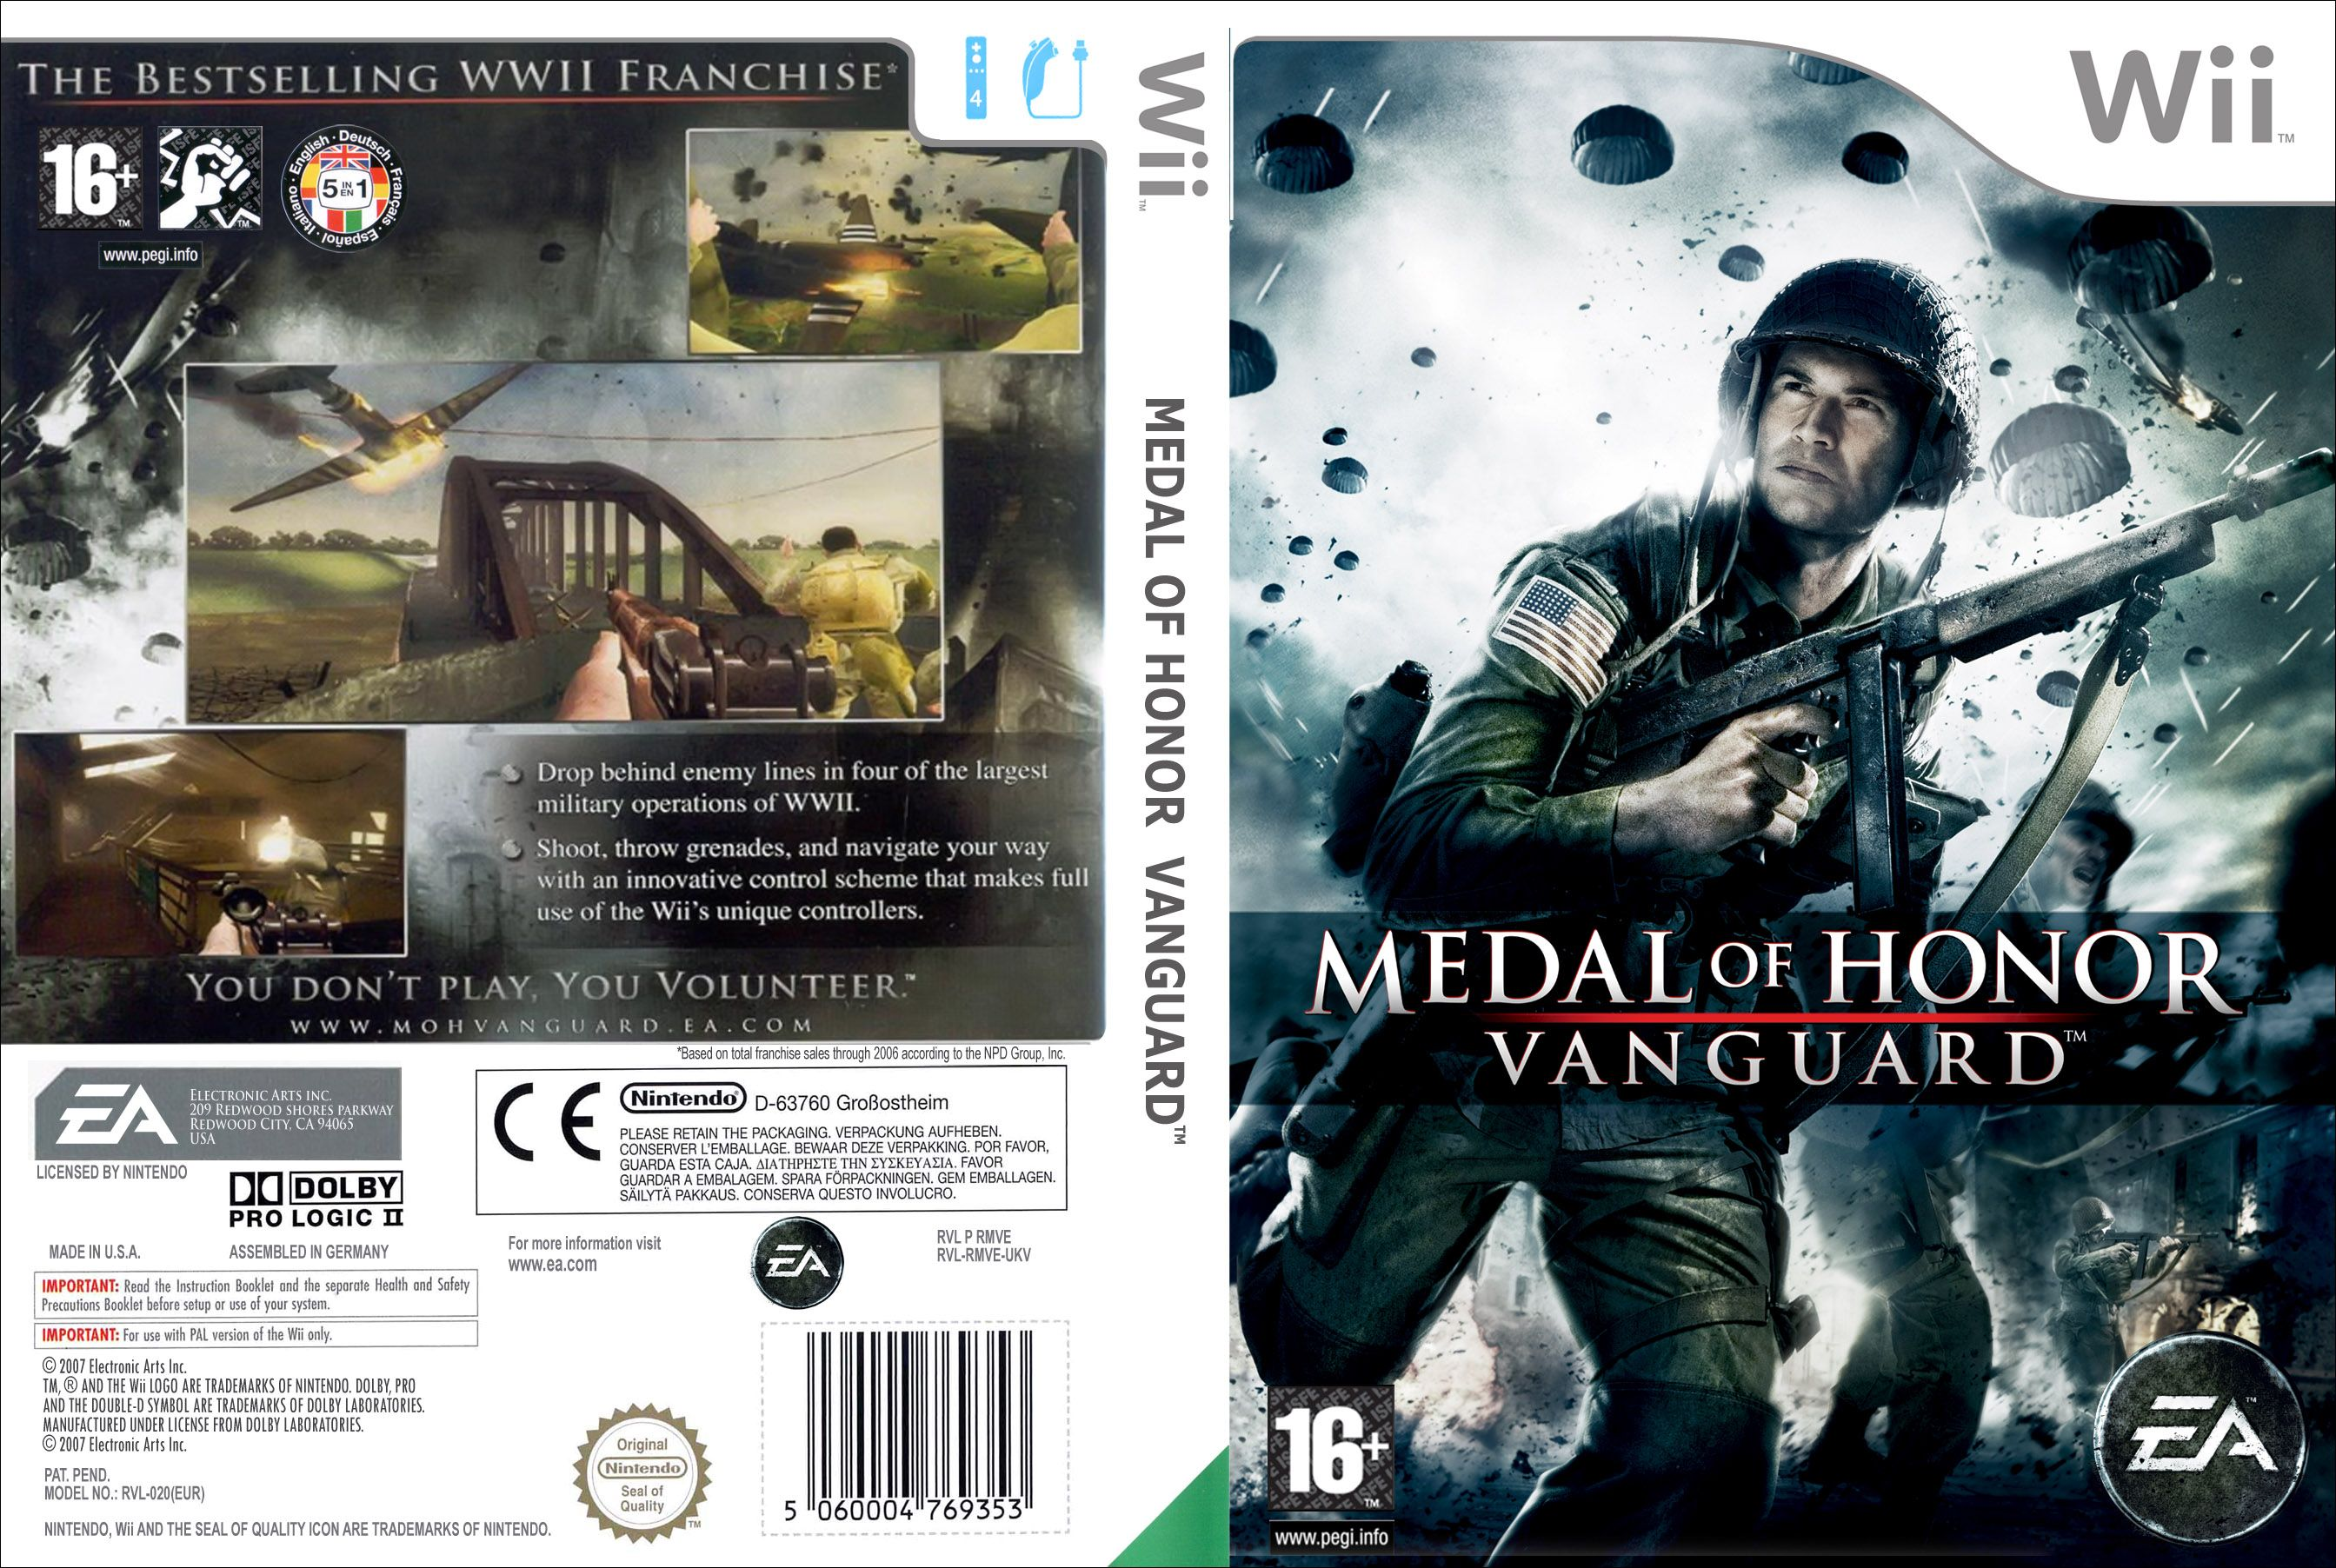 Medal Of Honor Vanguard Ntsc Wii Full2 Wii Covers Cover Century Over 500 000 Album Art Covers For Free